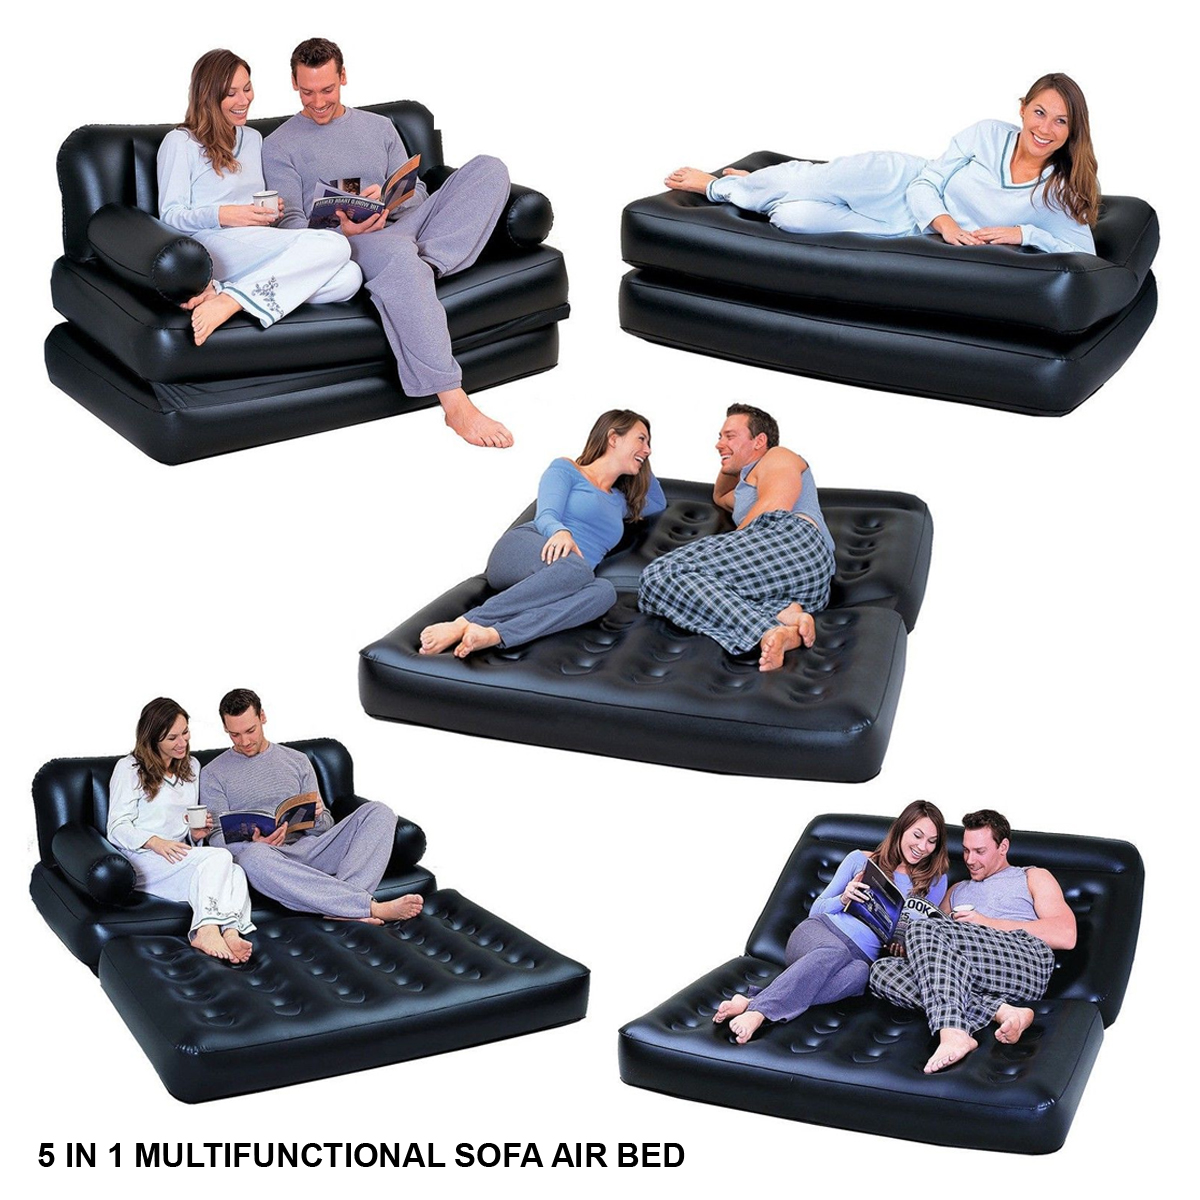 Inflatable Sofa Air Bed Lounger: MULTI-FUNCTION 5 IN1 INFLATABLE DOUBLE AIR BED LOUNGER